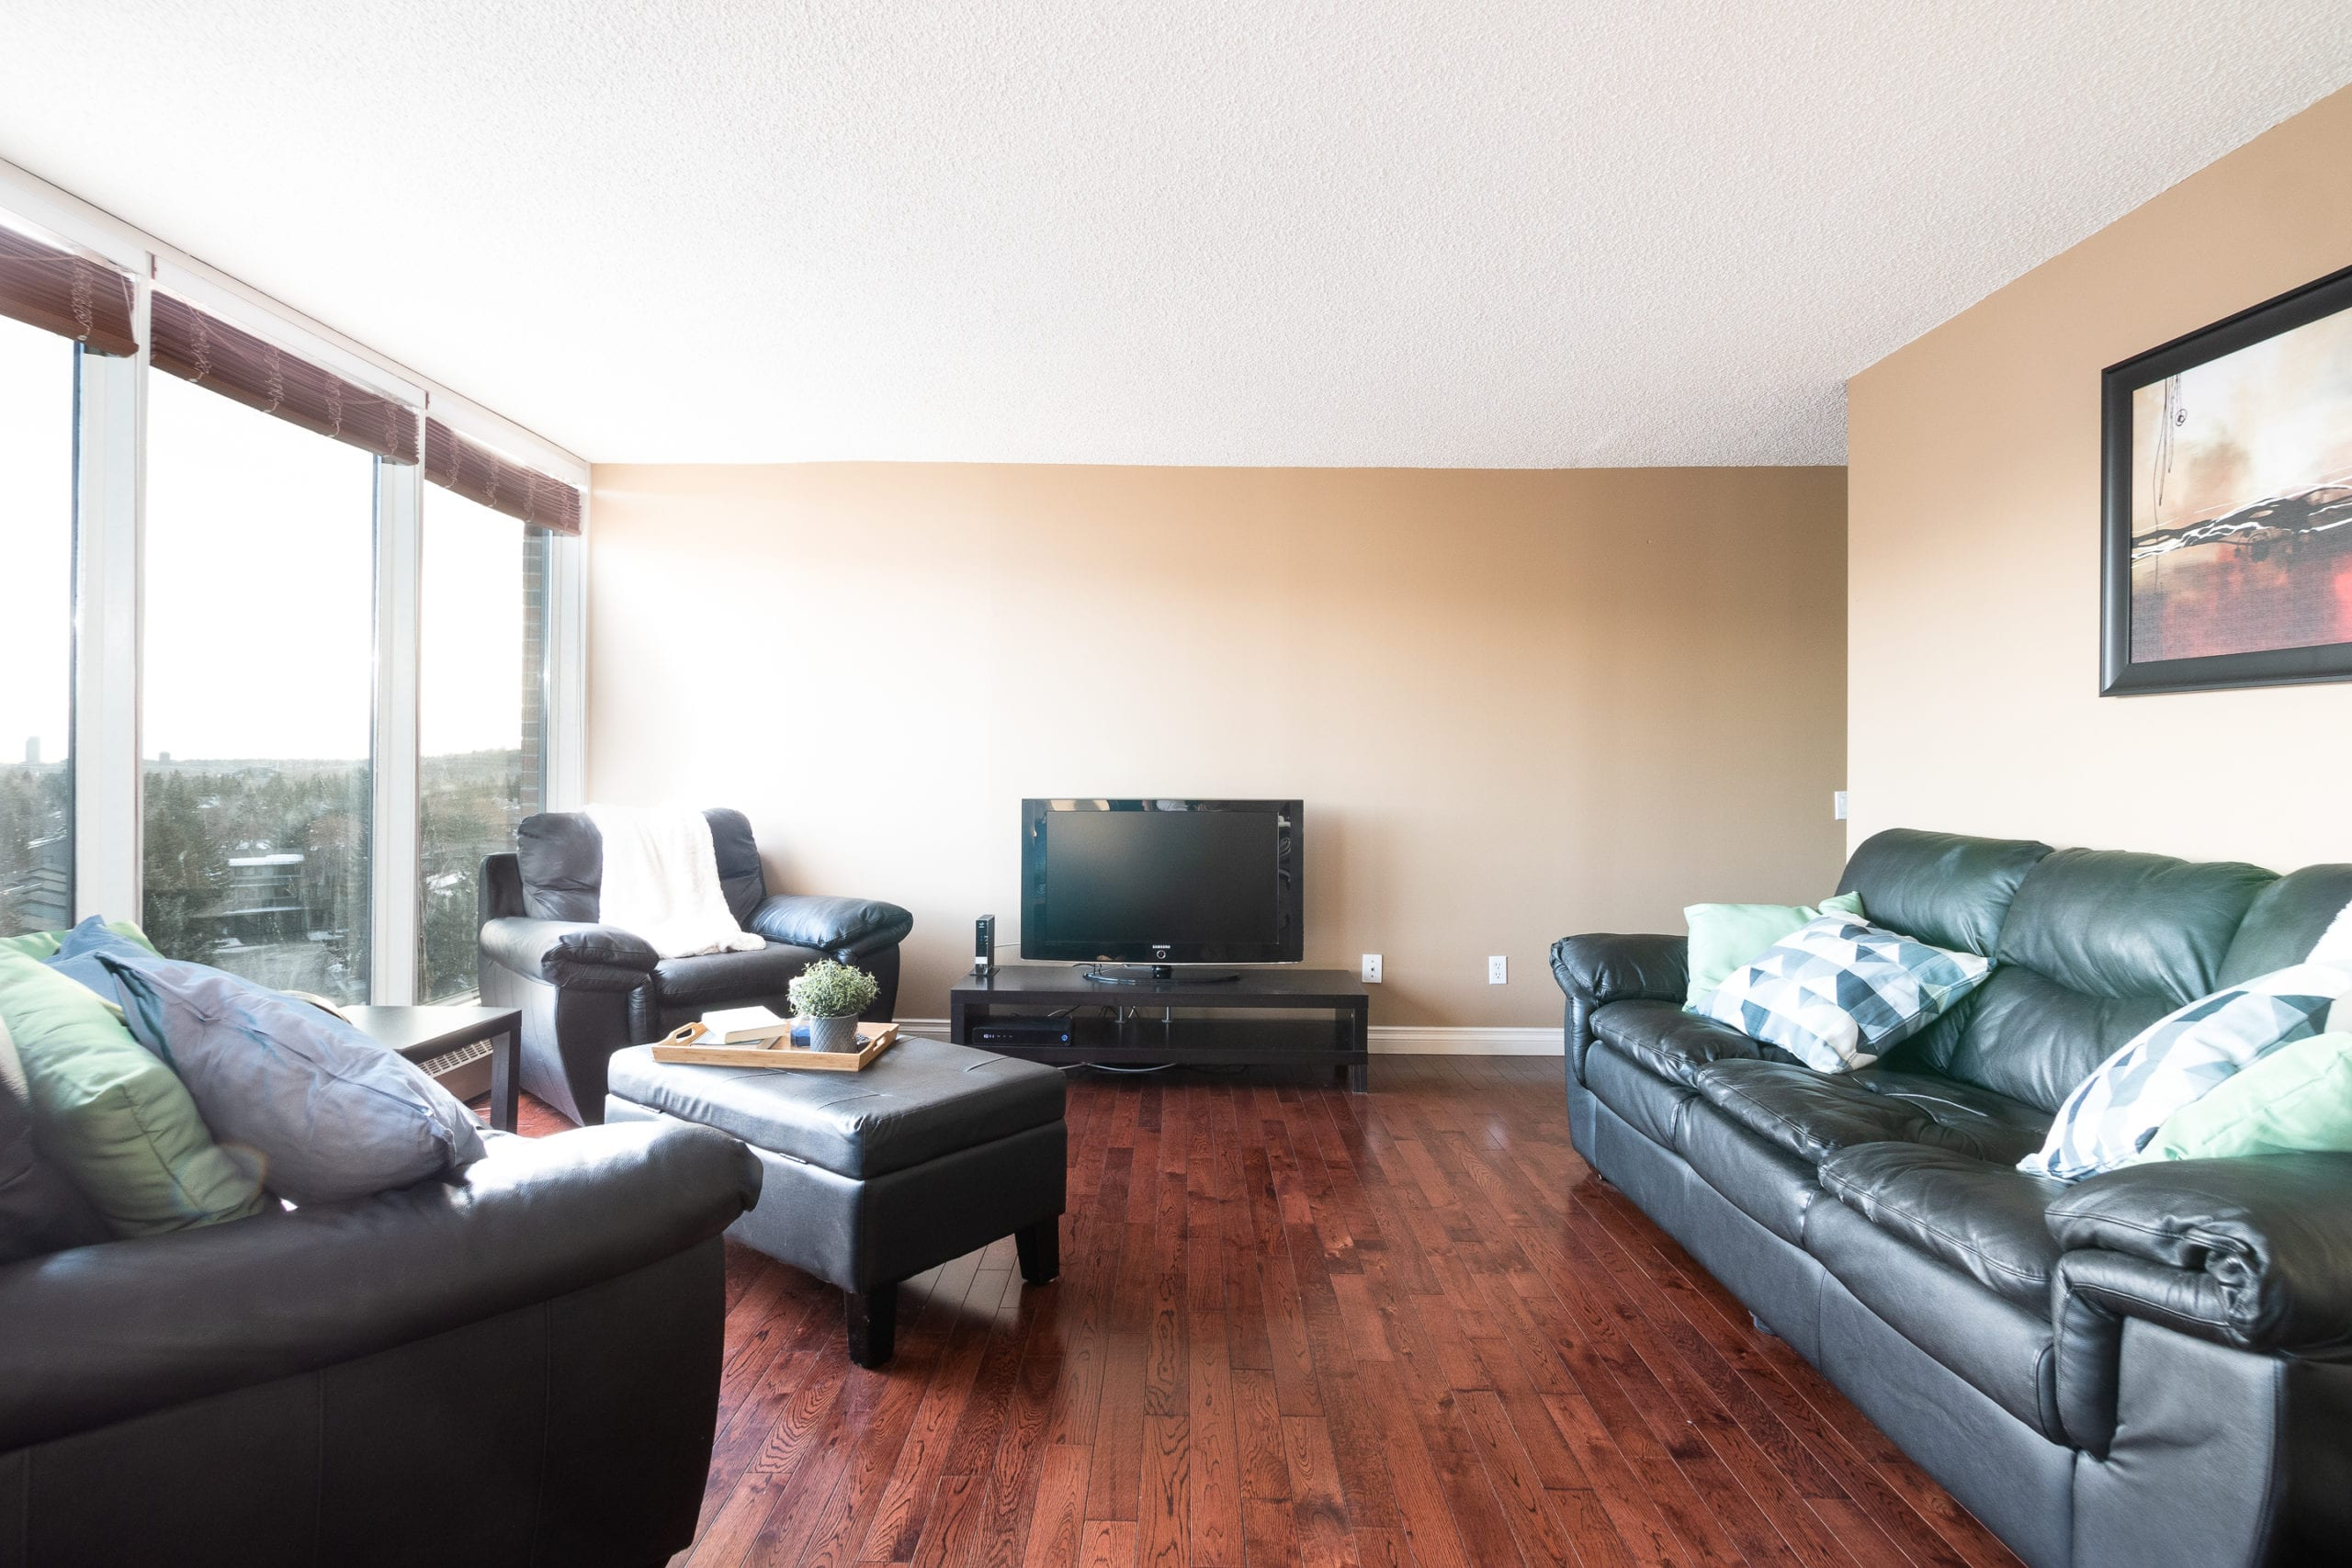 Hello Gorgeous - #705-145 point drive NW, Calgary AB - Tara Molina Real Estate (4 of 45)